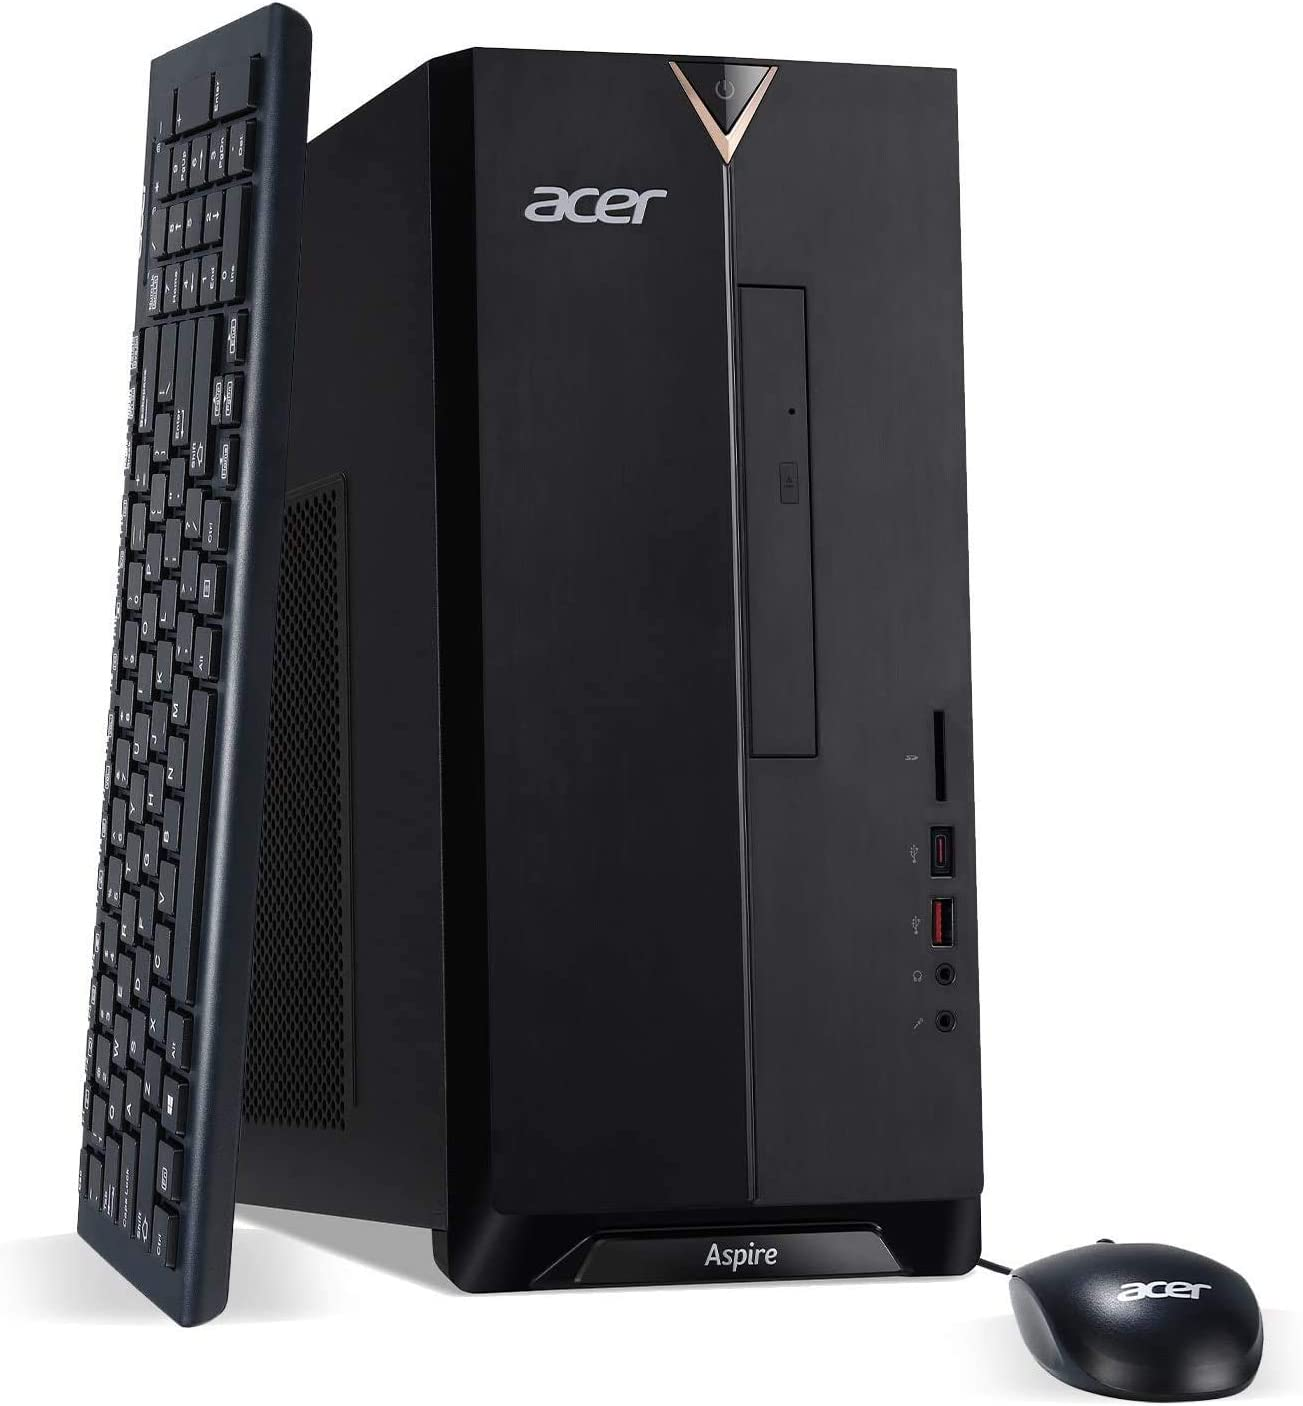 2020 Acer Aspire TC-885 Newest Desktop, 9th Gen Intel Core i5-9400 Upto 4.1GHz,DVD, 32GB DDR4, 1TB SSD + 1TB HDD, 802.11AC, USB 3.1 Type C, Windows 10 Home,Black w/Rock eDigital Accessories